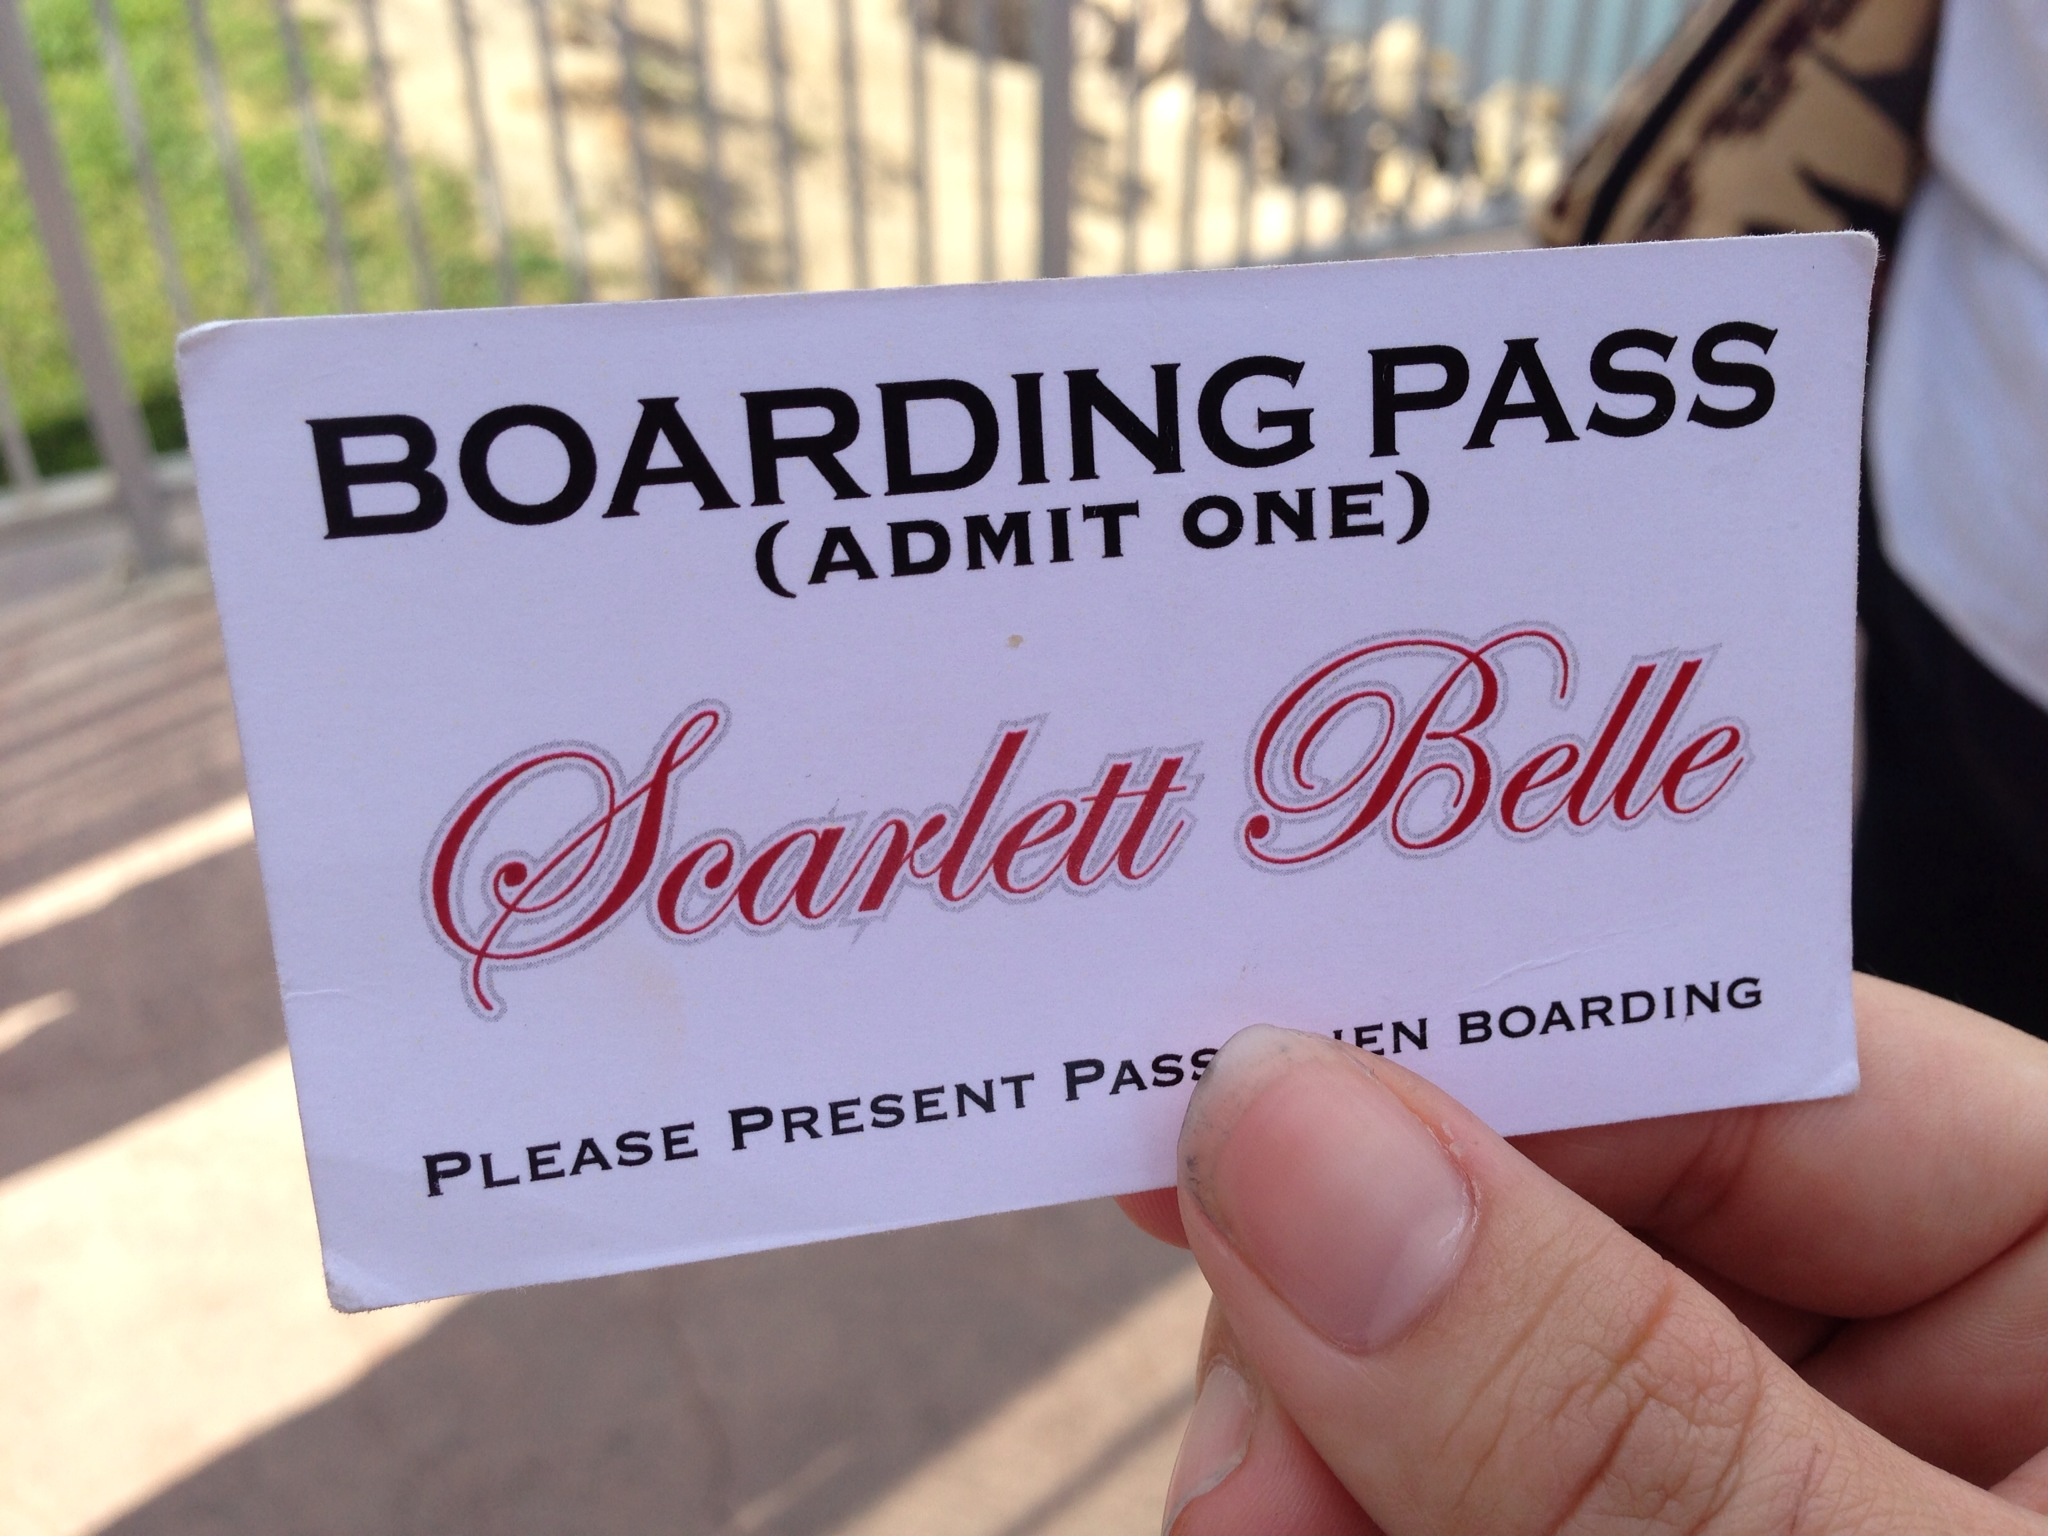 My boarding pass for the Scarlett Belle.